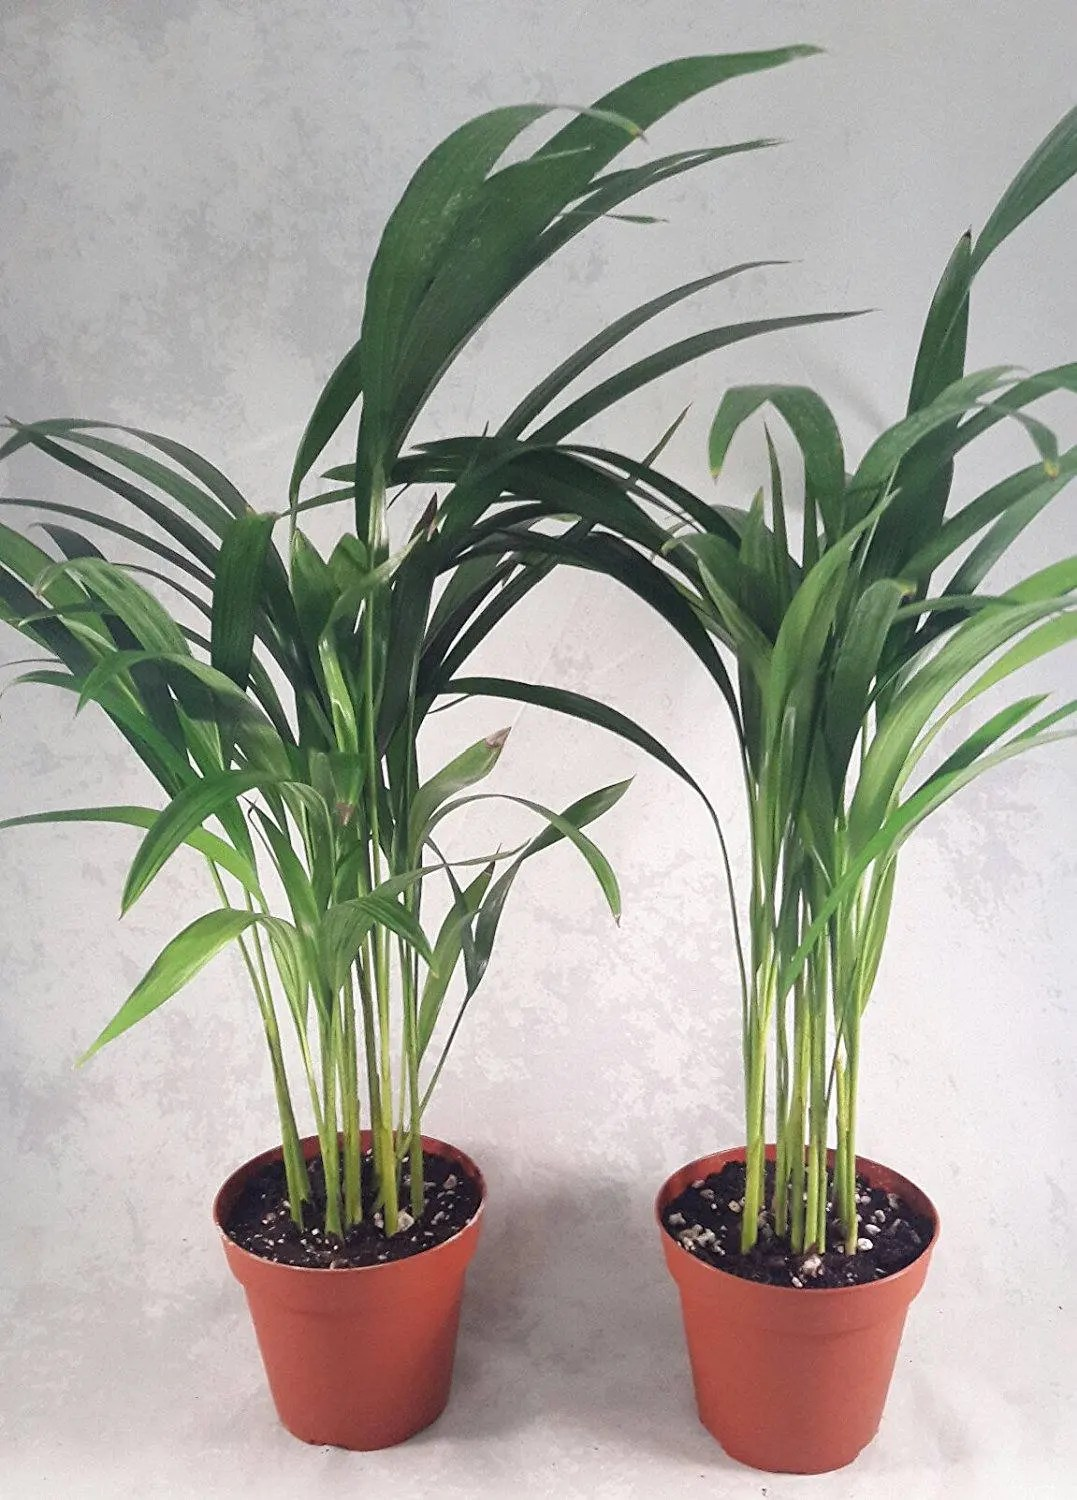 Artificial Chrysalidocarpus Lutescens Two Areca Palm Plant Dypsis Lutescens 4 Pot Easy To Grow